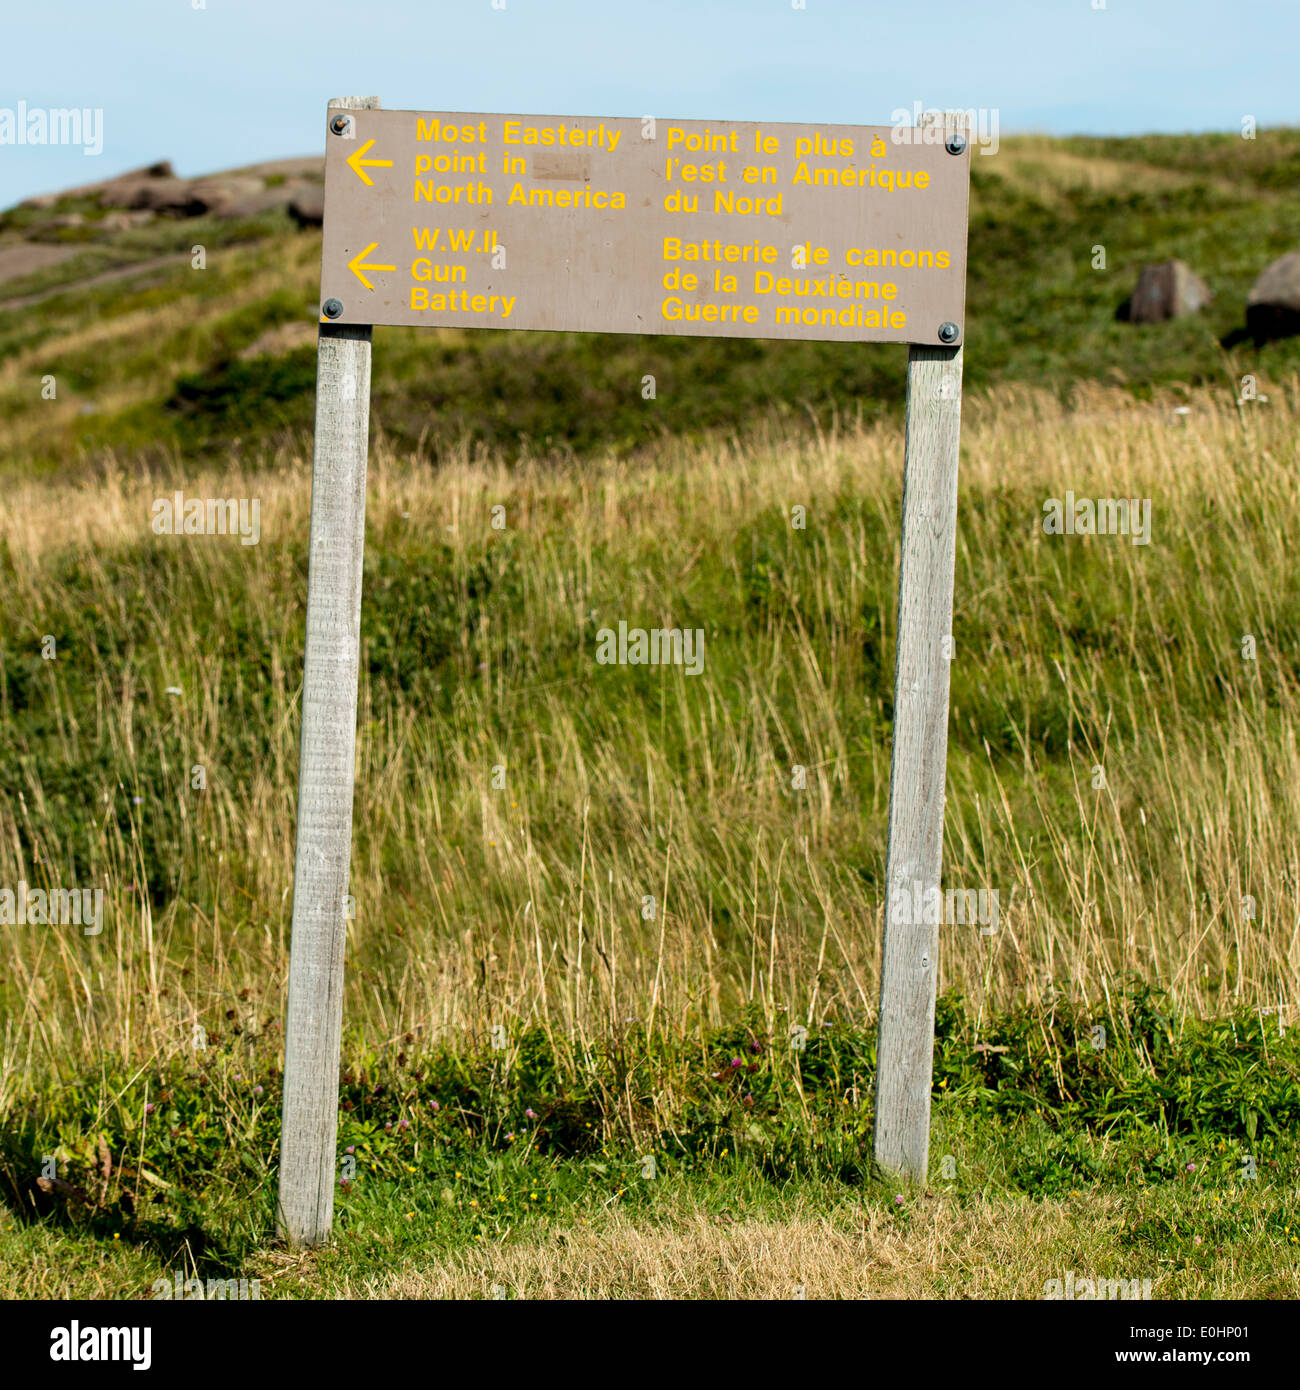 Signboard at Cape Spear, St. John's, Newfoundland And Labrador, Canada - Stock Image